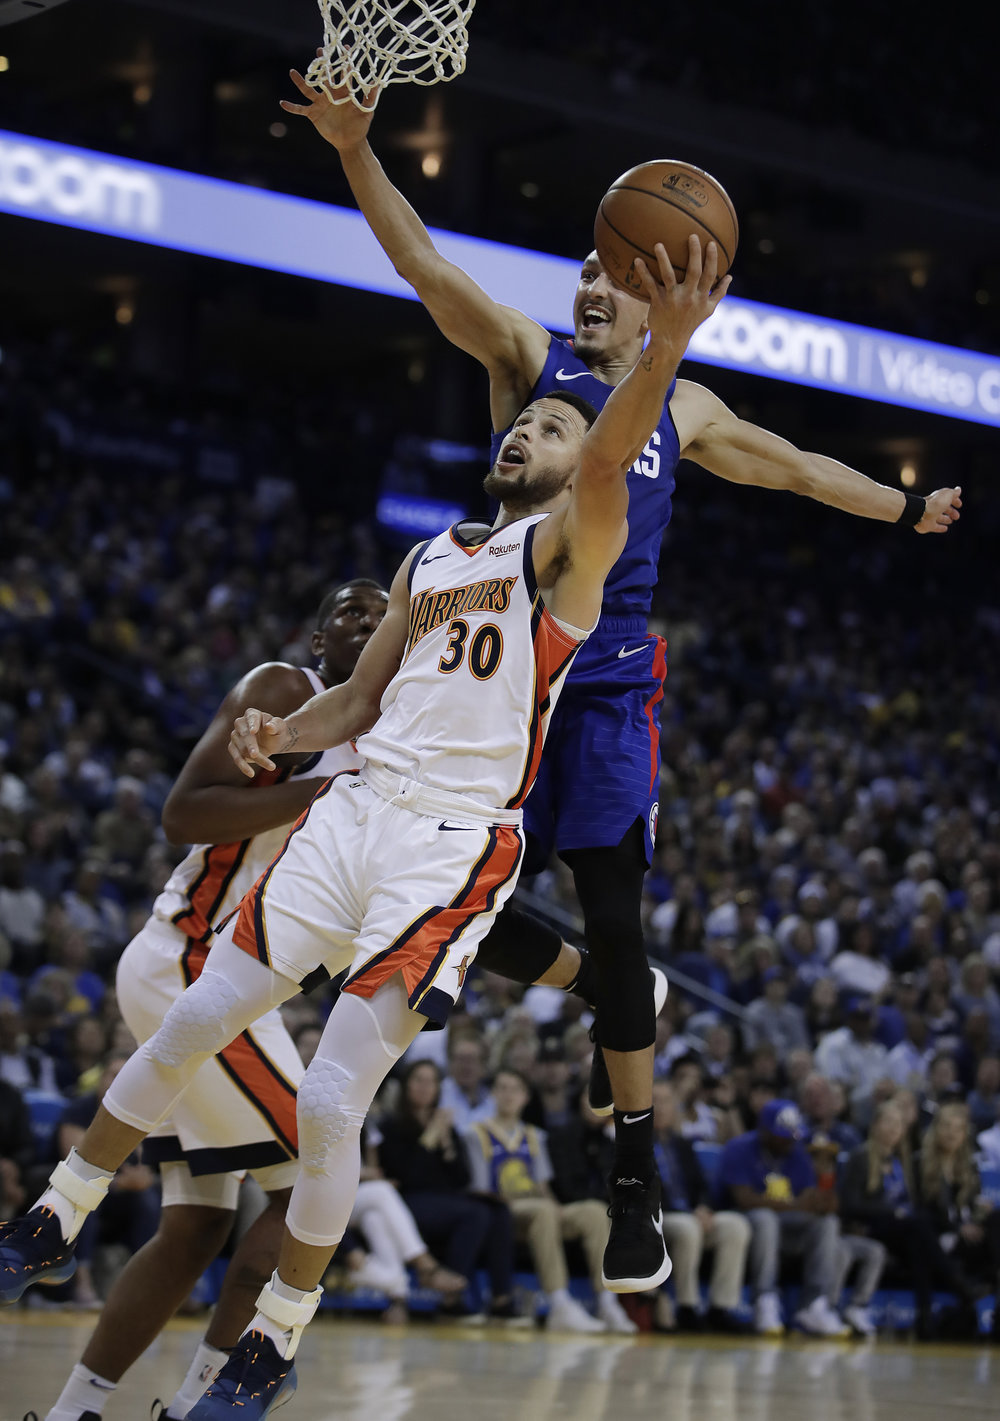 Golden State Warriors' Stephen Curry (30) shoots against Los Angeles Clippers' Landry Shamet during the second half of an NBA basketball game Sunday, April 7, 2019, in Oakland, Calif. (AP Photo/Ben Margot)